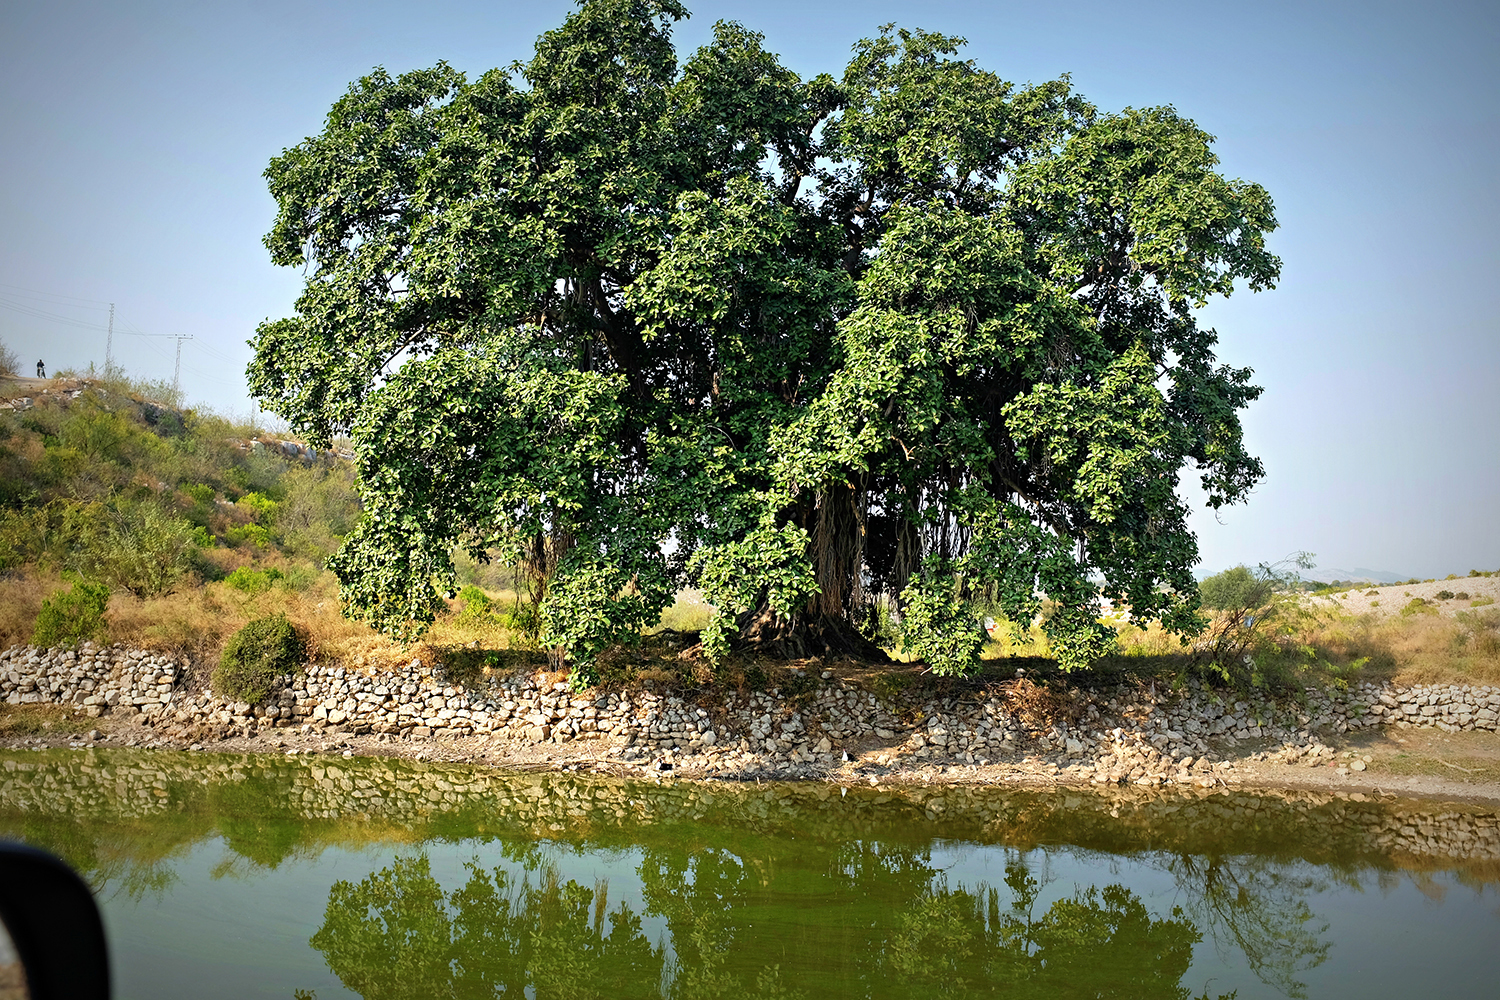 An old banyan tree standing by the side of a pond is not an unusual sight in Potohar.